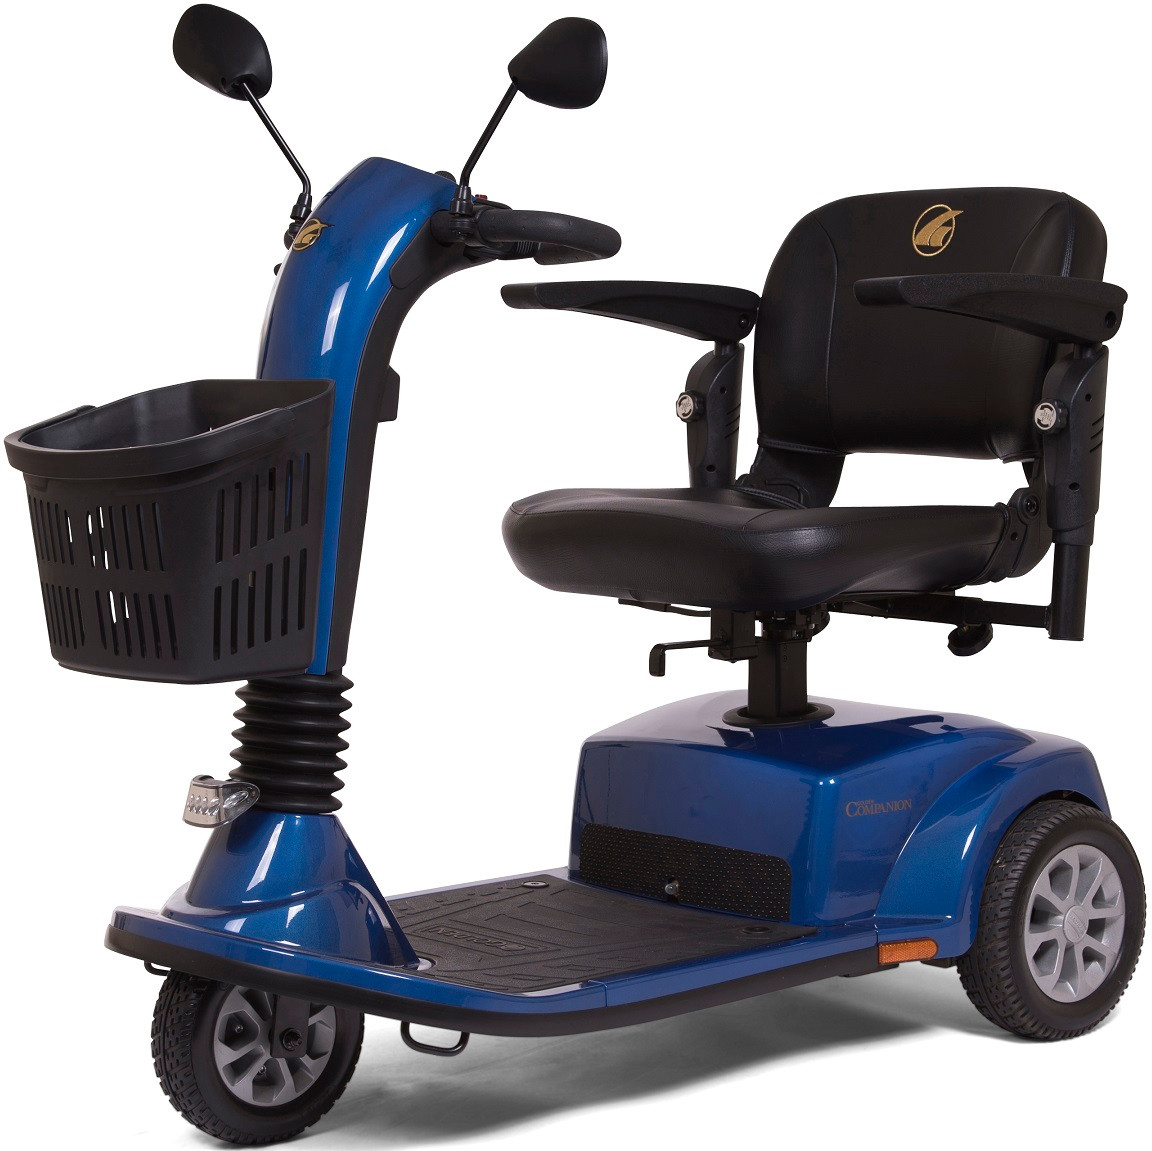 Companion GC340 Full Size 3-Wheel Scooter by Golden